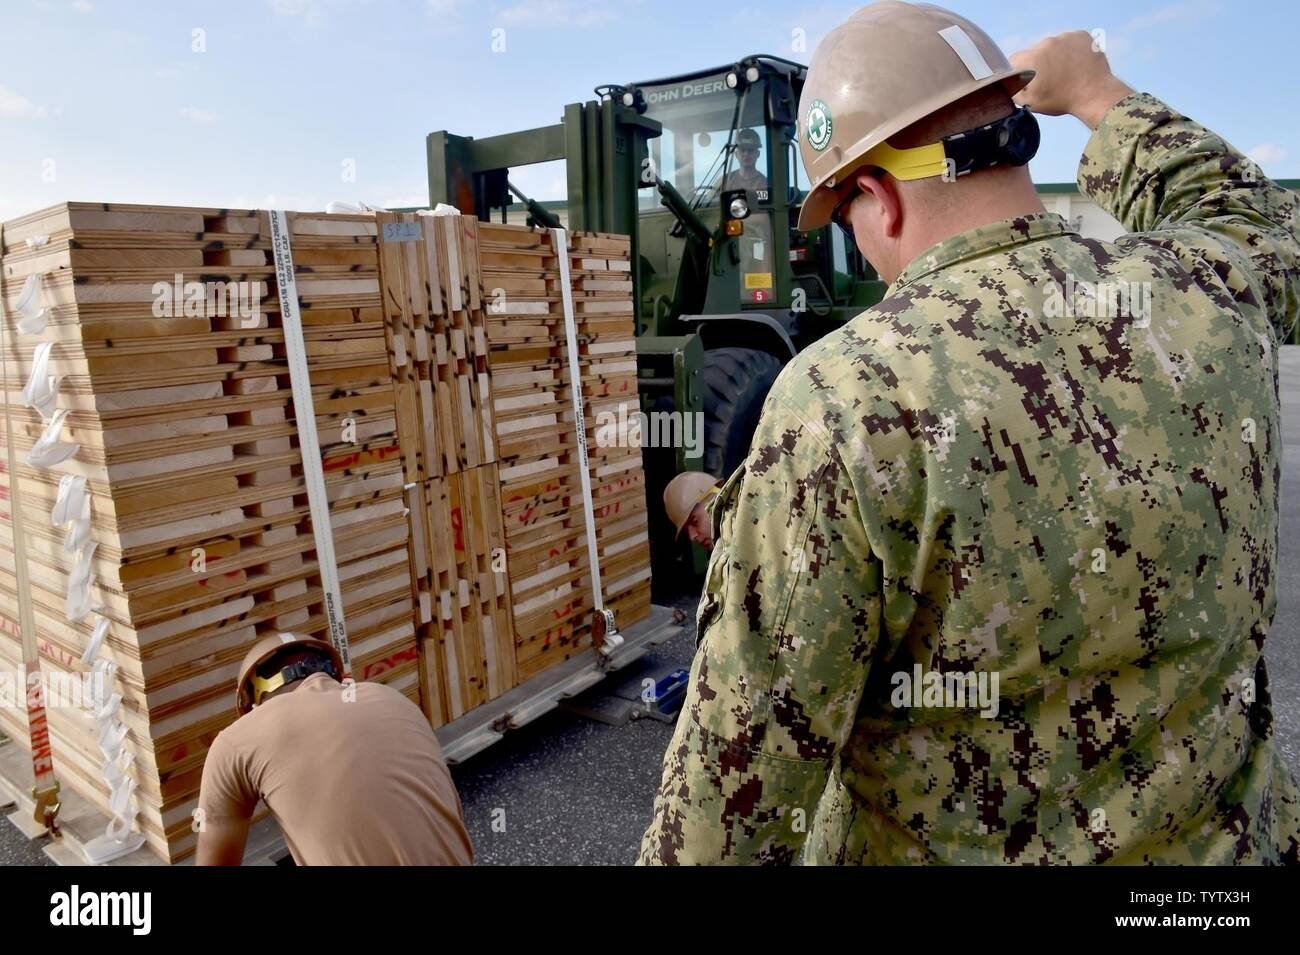 Japan (Nov 29, 2016) Petty Officer 2nd Class Bernard Barbuto, a Seabee assigned to Naval Mobile Construction Battalion (NMCB) 5, gives directions to a forklift operator while weighing a pallet on Camp Shields during an embark exercise. The exercise tests the commands ability to mobilize within 48 hours to react to different types of types of contingency operations around the world. NMCB 5 is the forward deployed Western Pacific NMCB ready to support Major Combat Operations, Humanitarian Assistance and Disaster Relief operations, and to provide general engineering and civil support to Navy, Mar - Stock Image